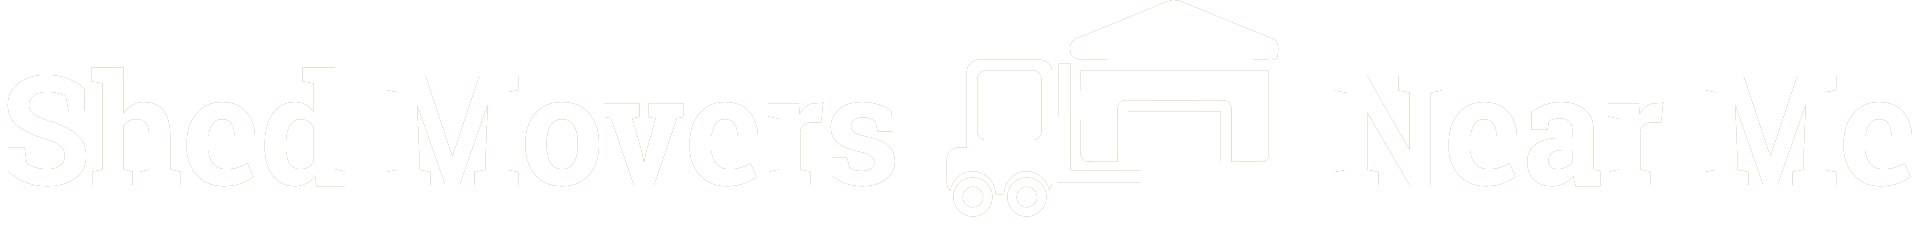 Shed Movers Near Me